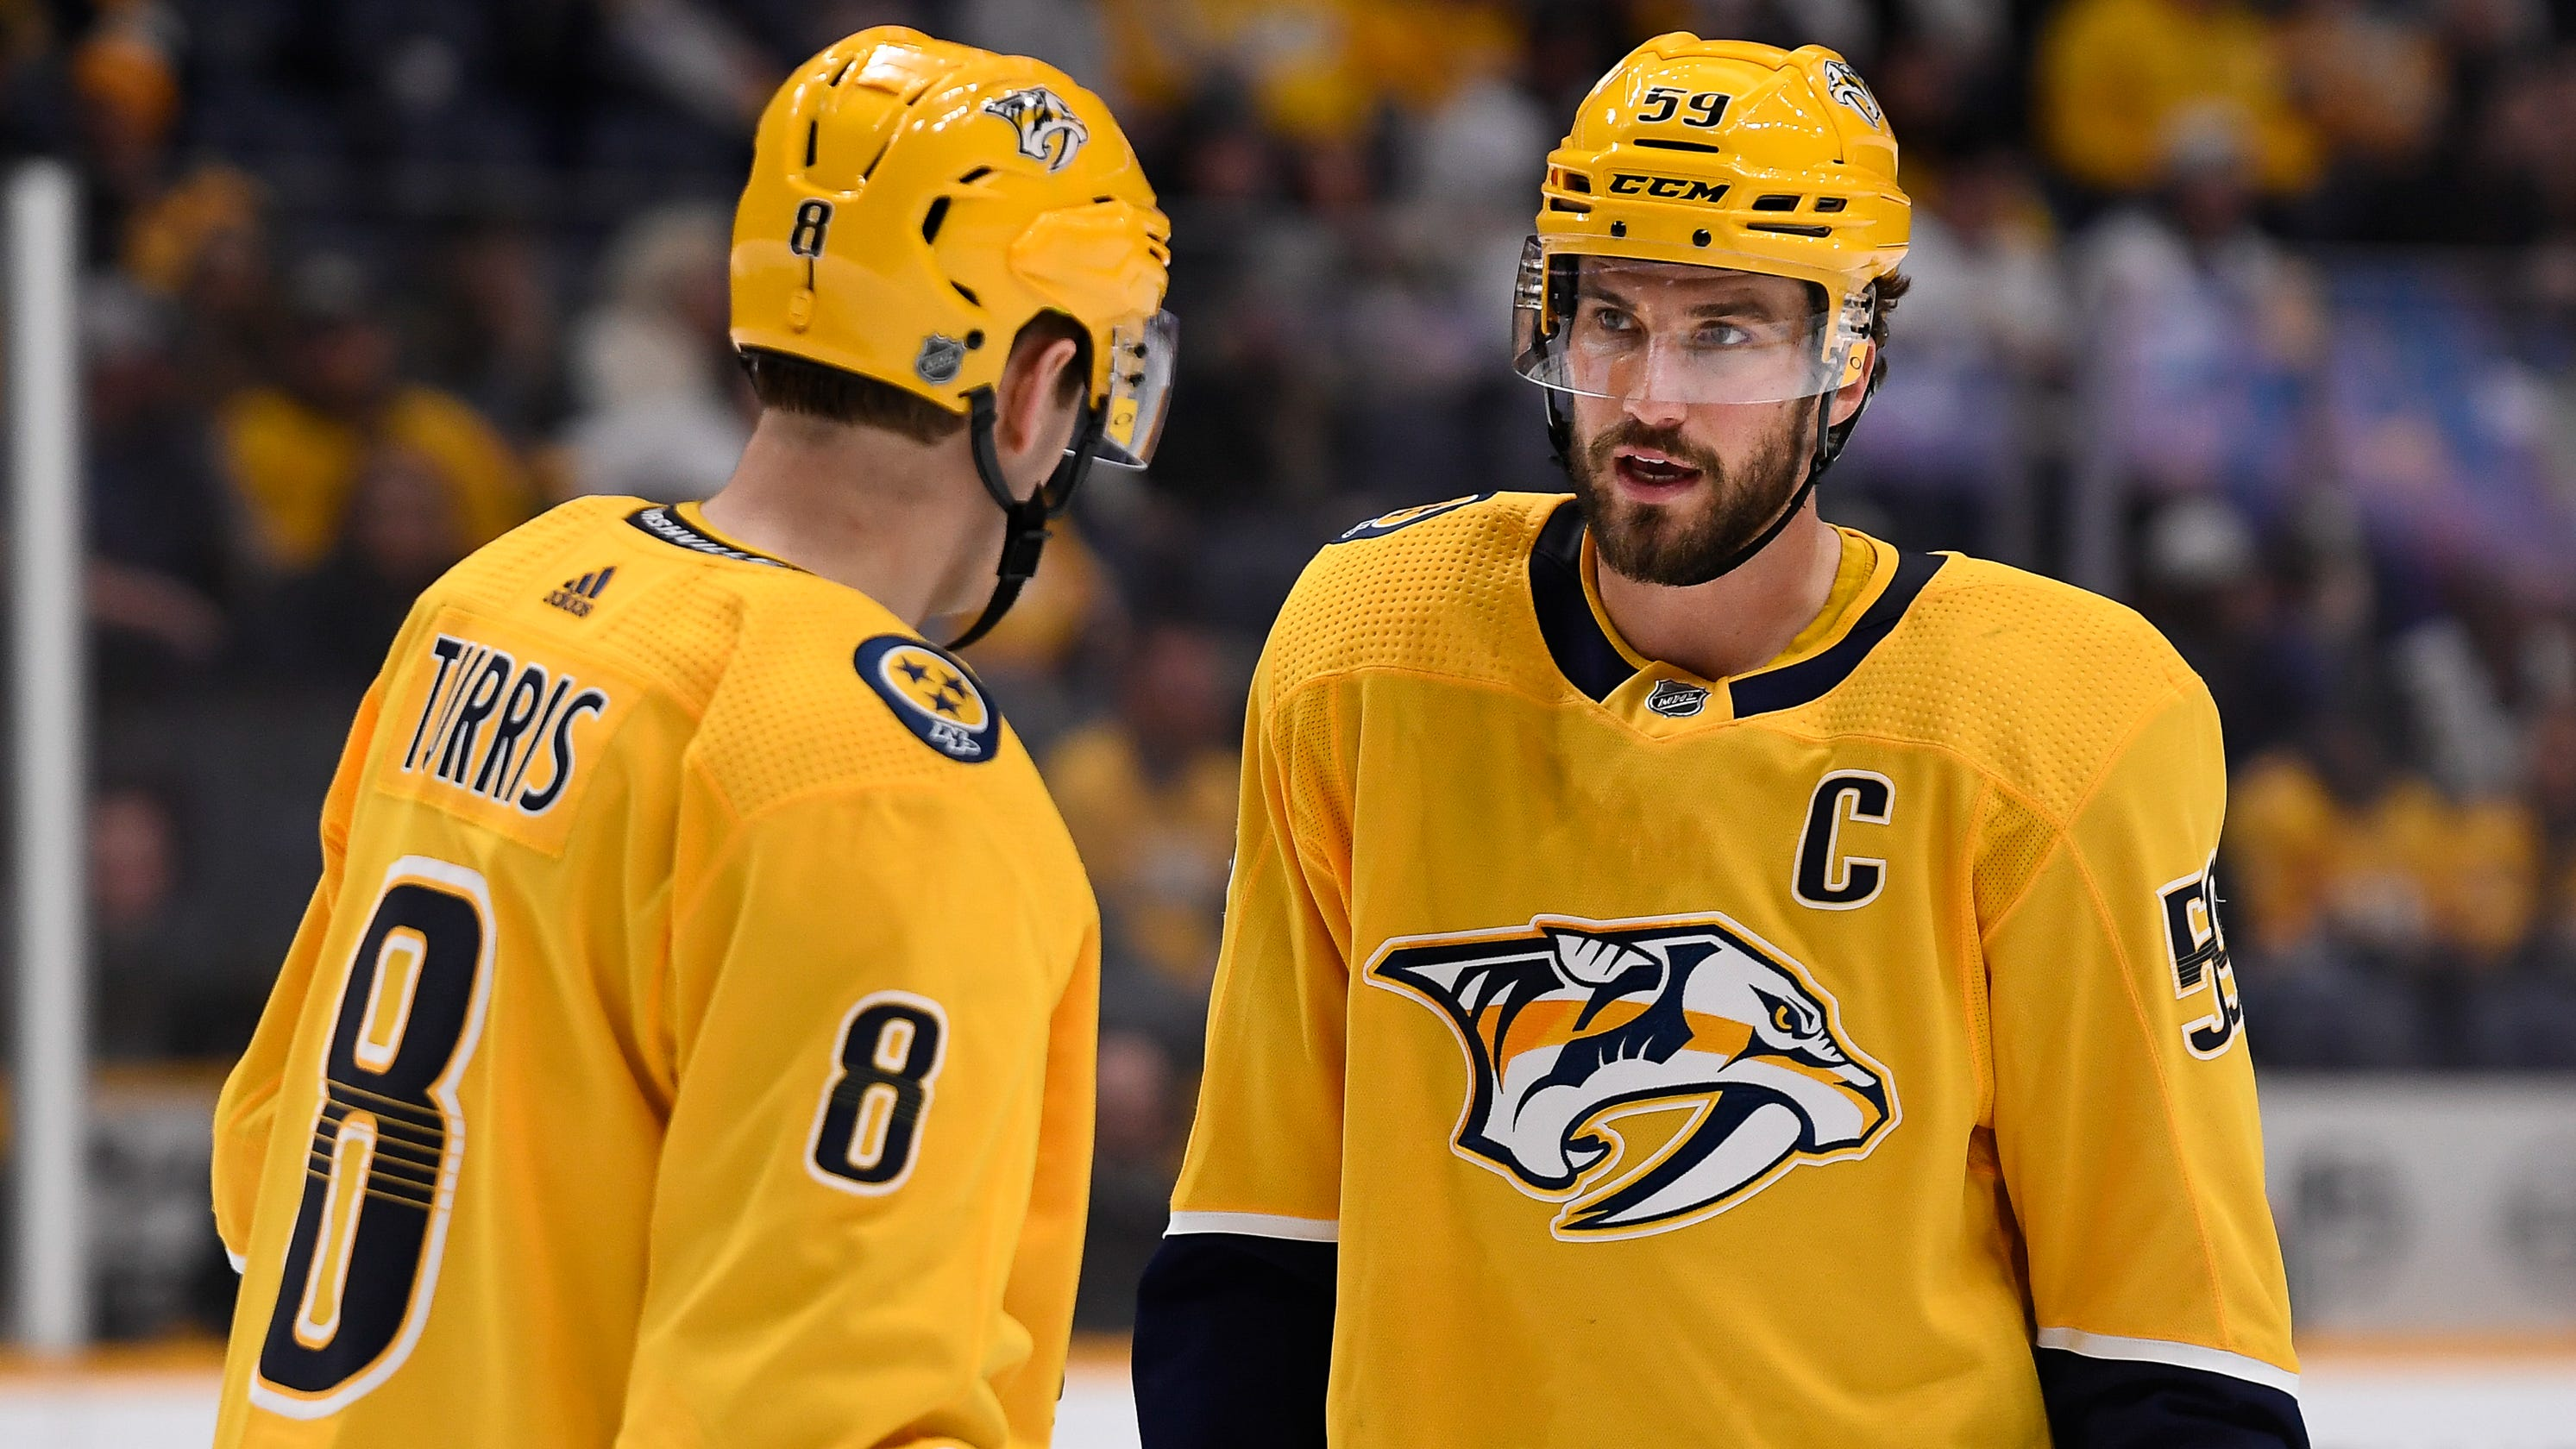 Predators captain Roman Josi continues to carry load as Ryan Ellis inches closer to return